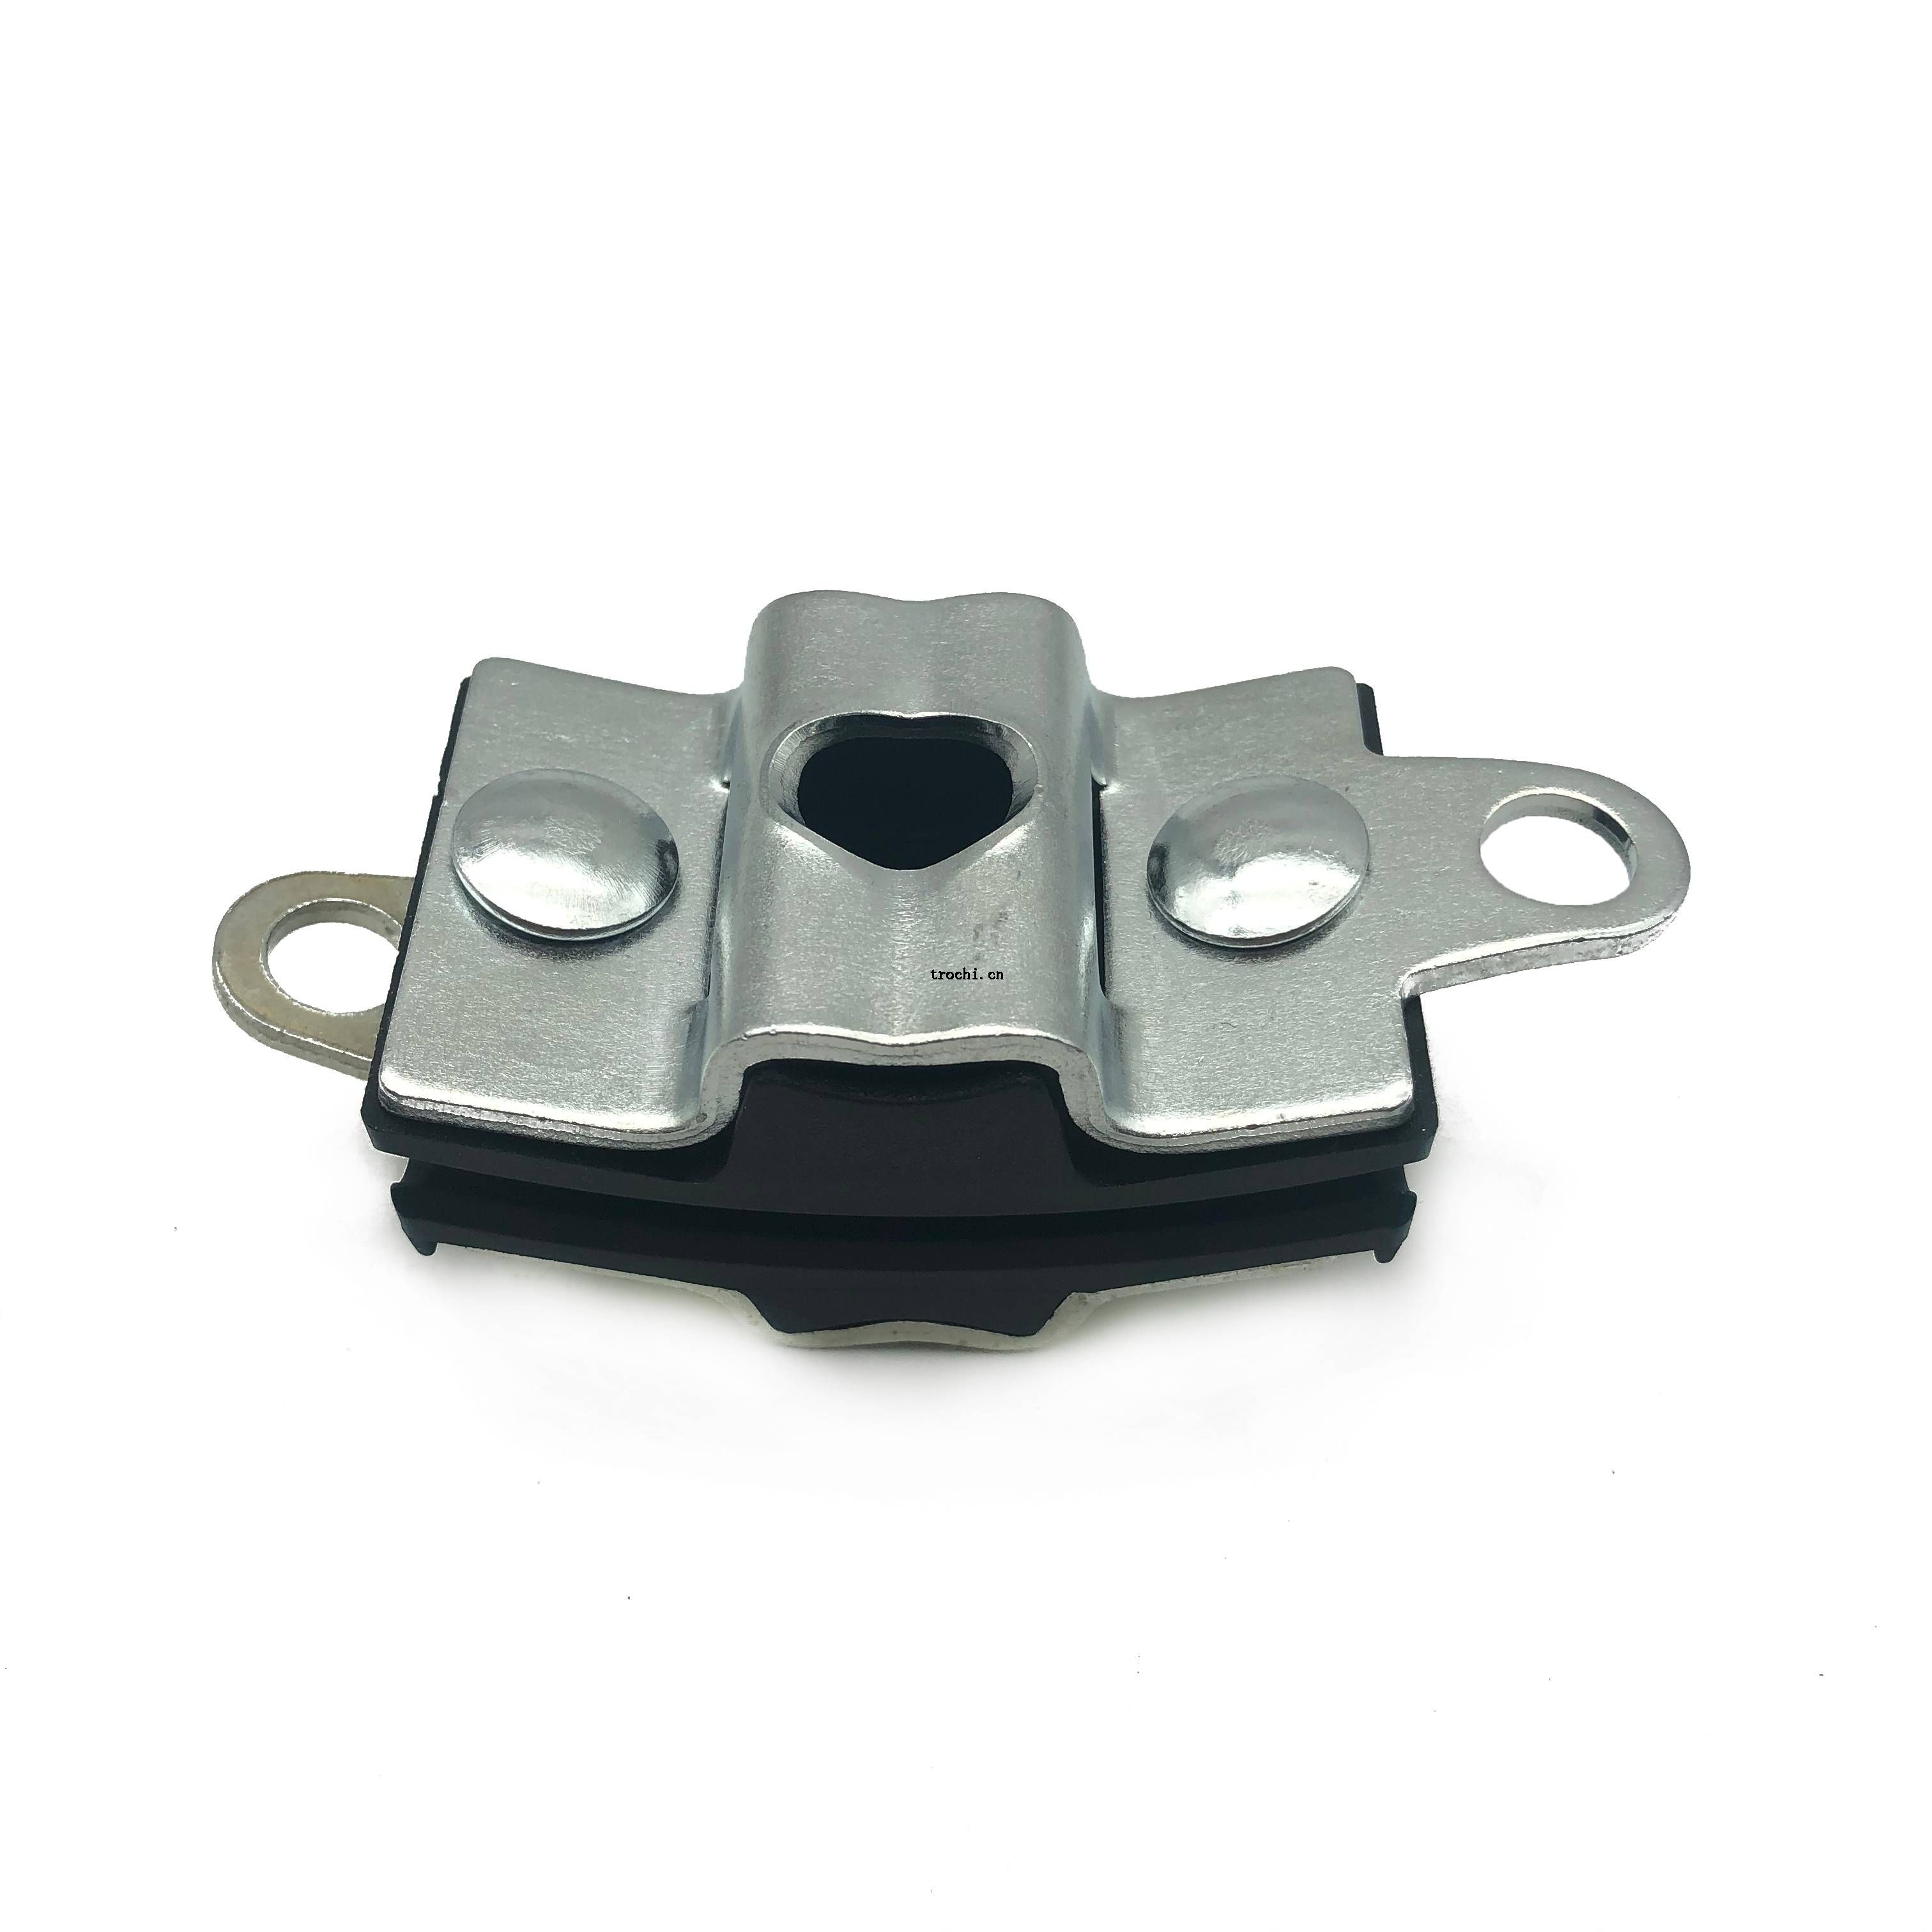 curved suspension clamp for figure-8 fiber optic cable